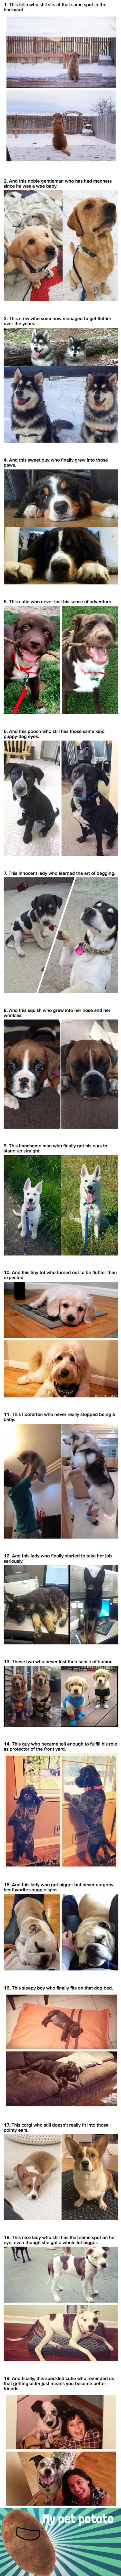 19 Pictures Of Grown-Up Puppies That Will Make You Literally Cry